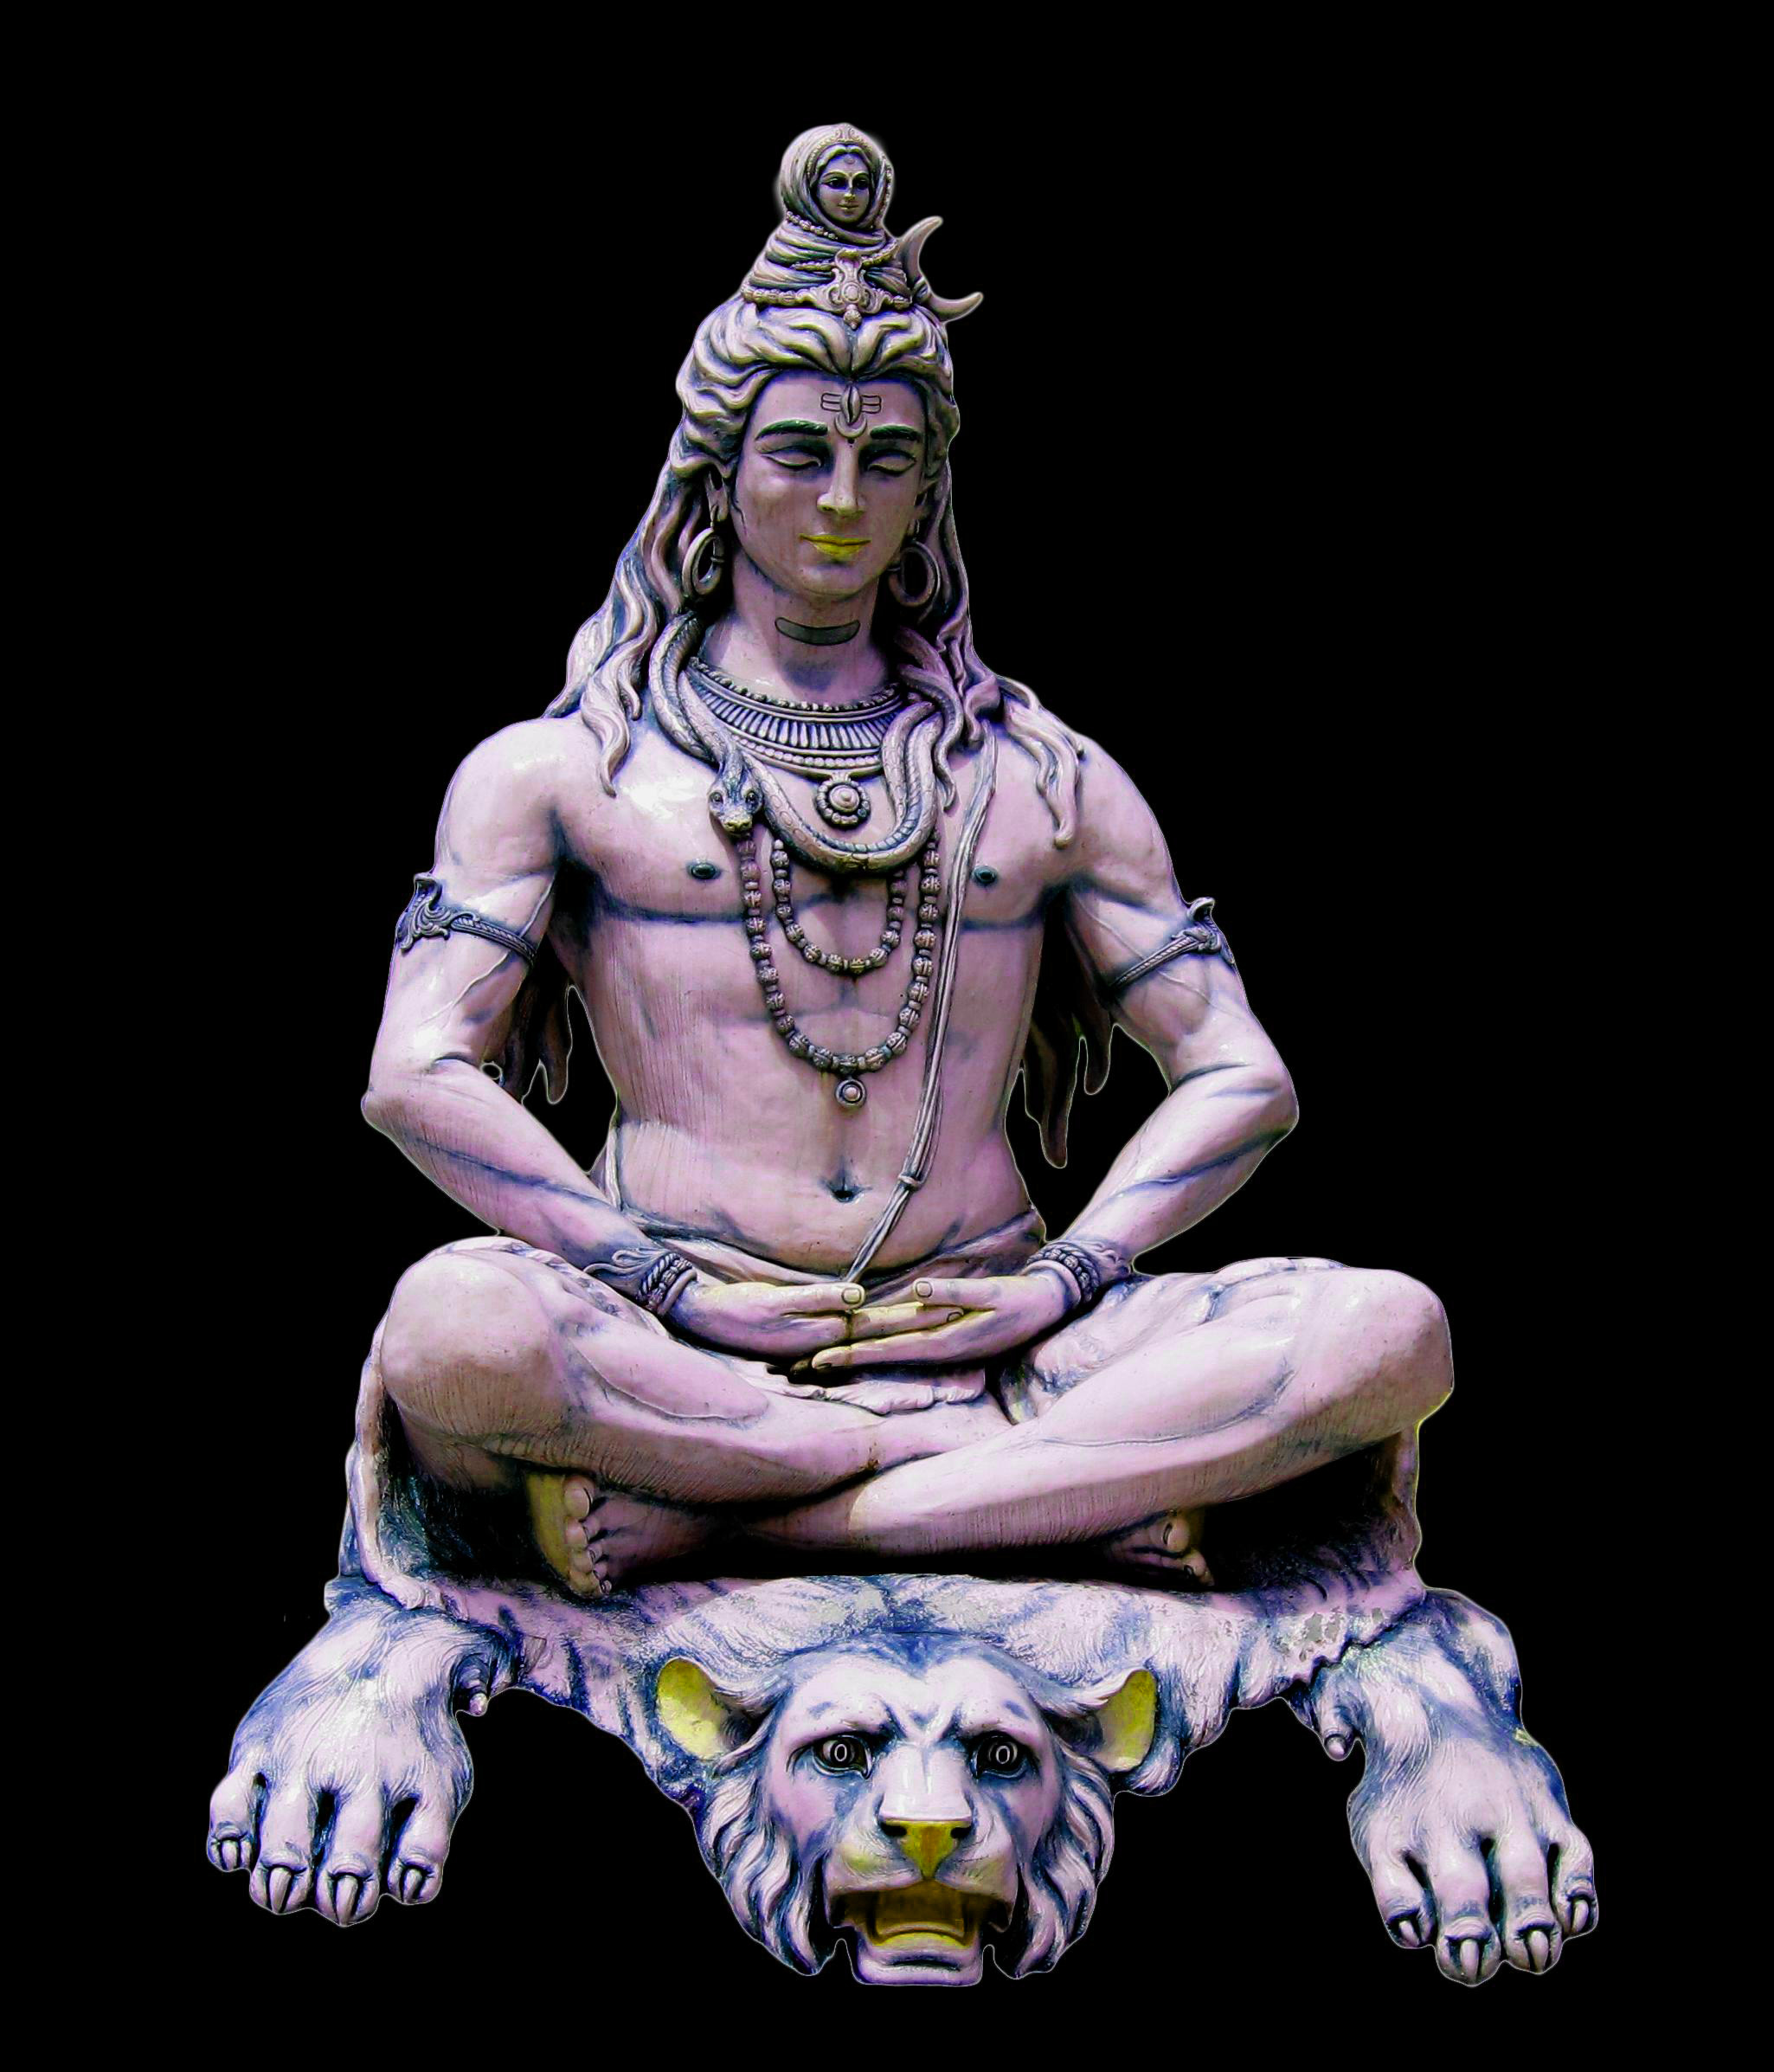 New Free 1080p Lord Shiva Images Photo Download